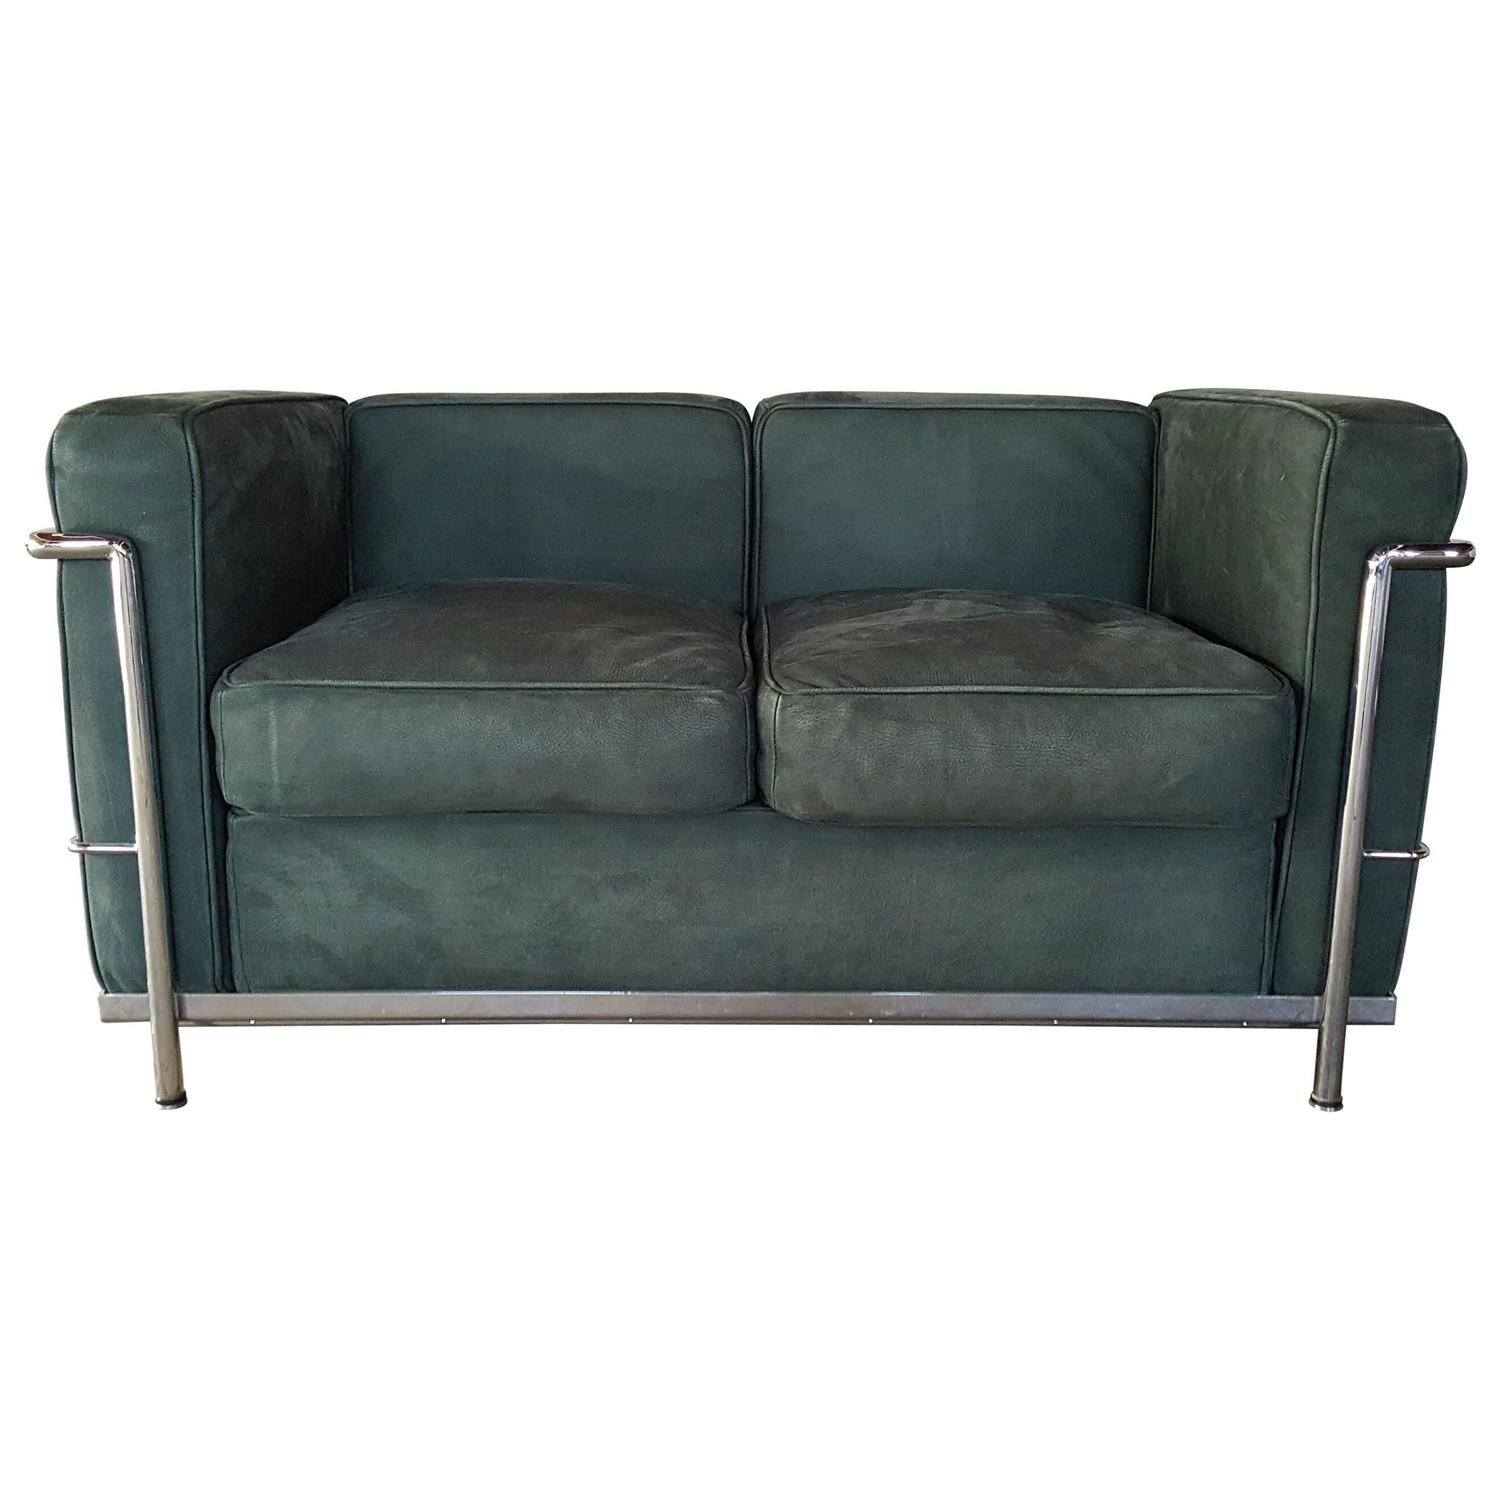 Le Corbusier Two Seat Sofa Loveseat Green Suede And Chrome For Sale At 1stdibs